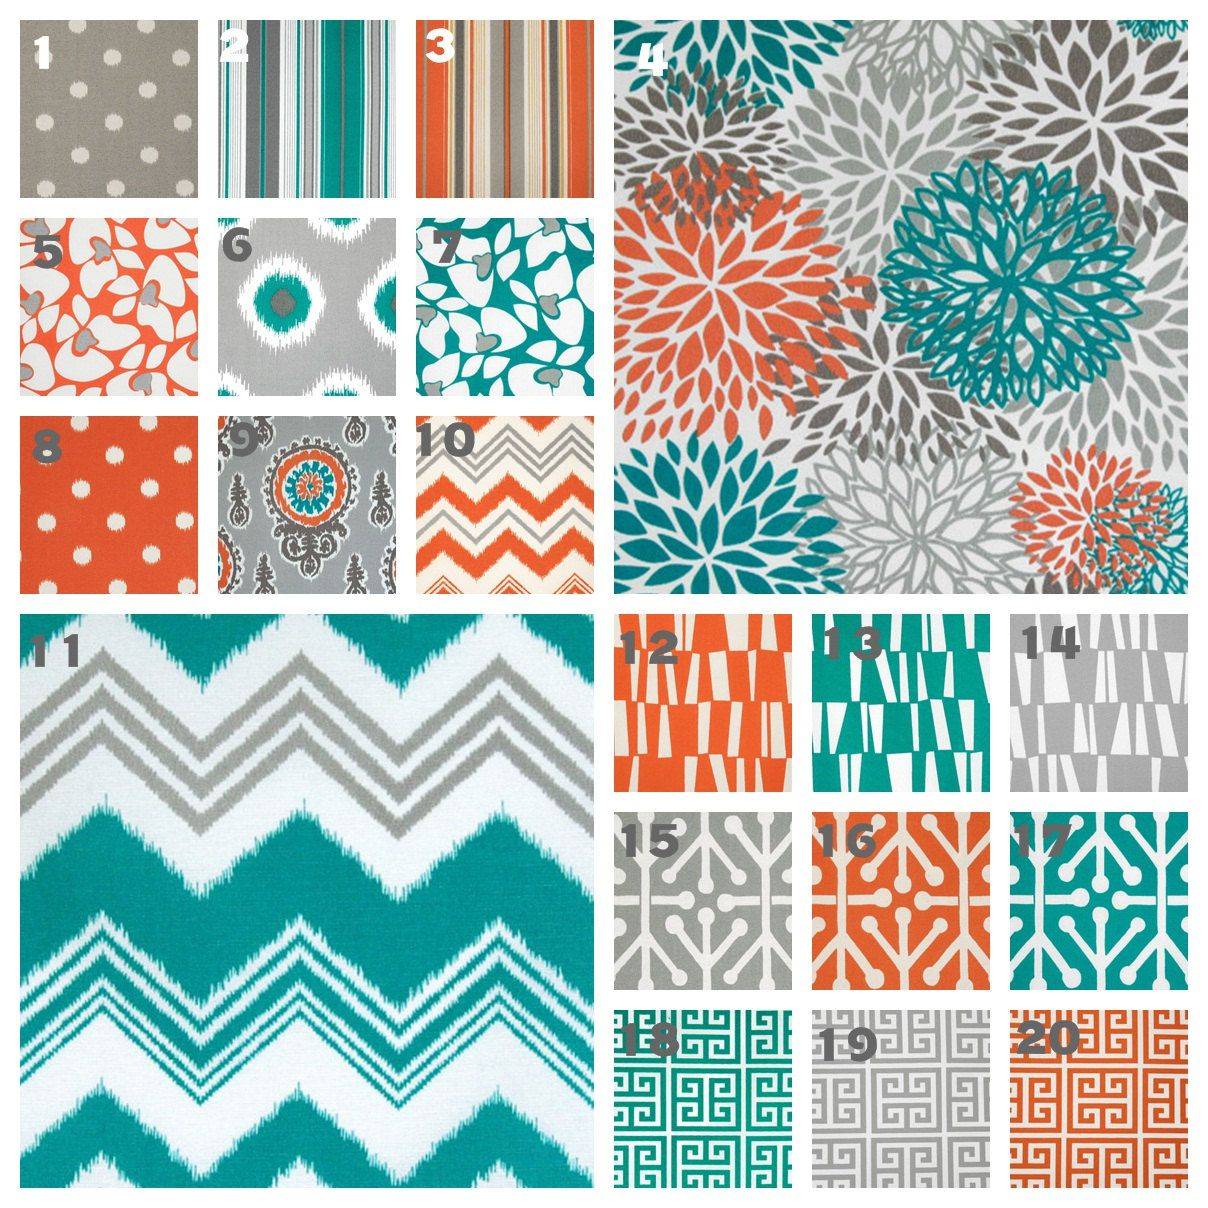 Color Ideas For Grey S Part Of The Room Orange And